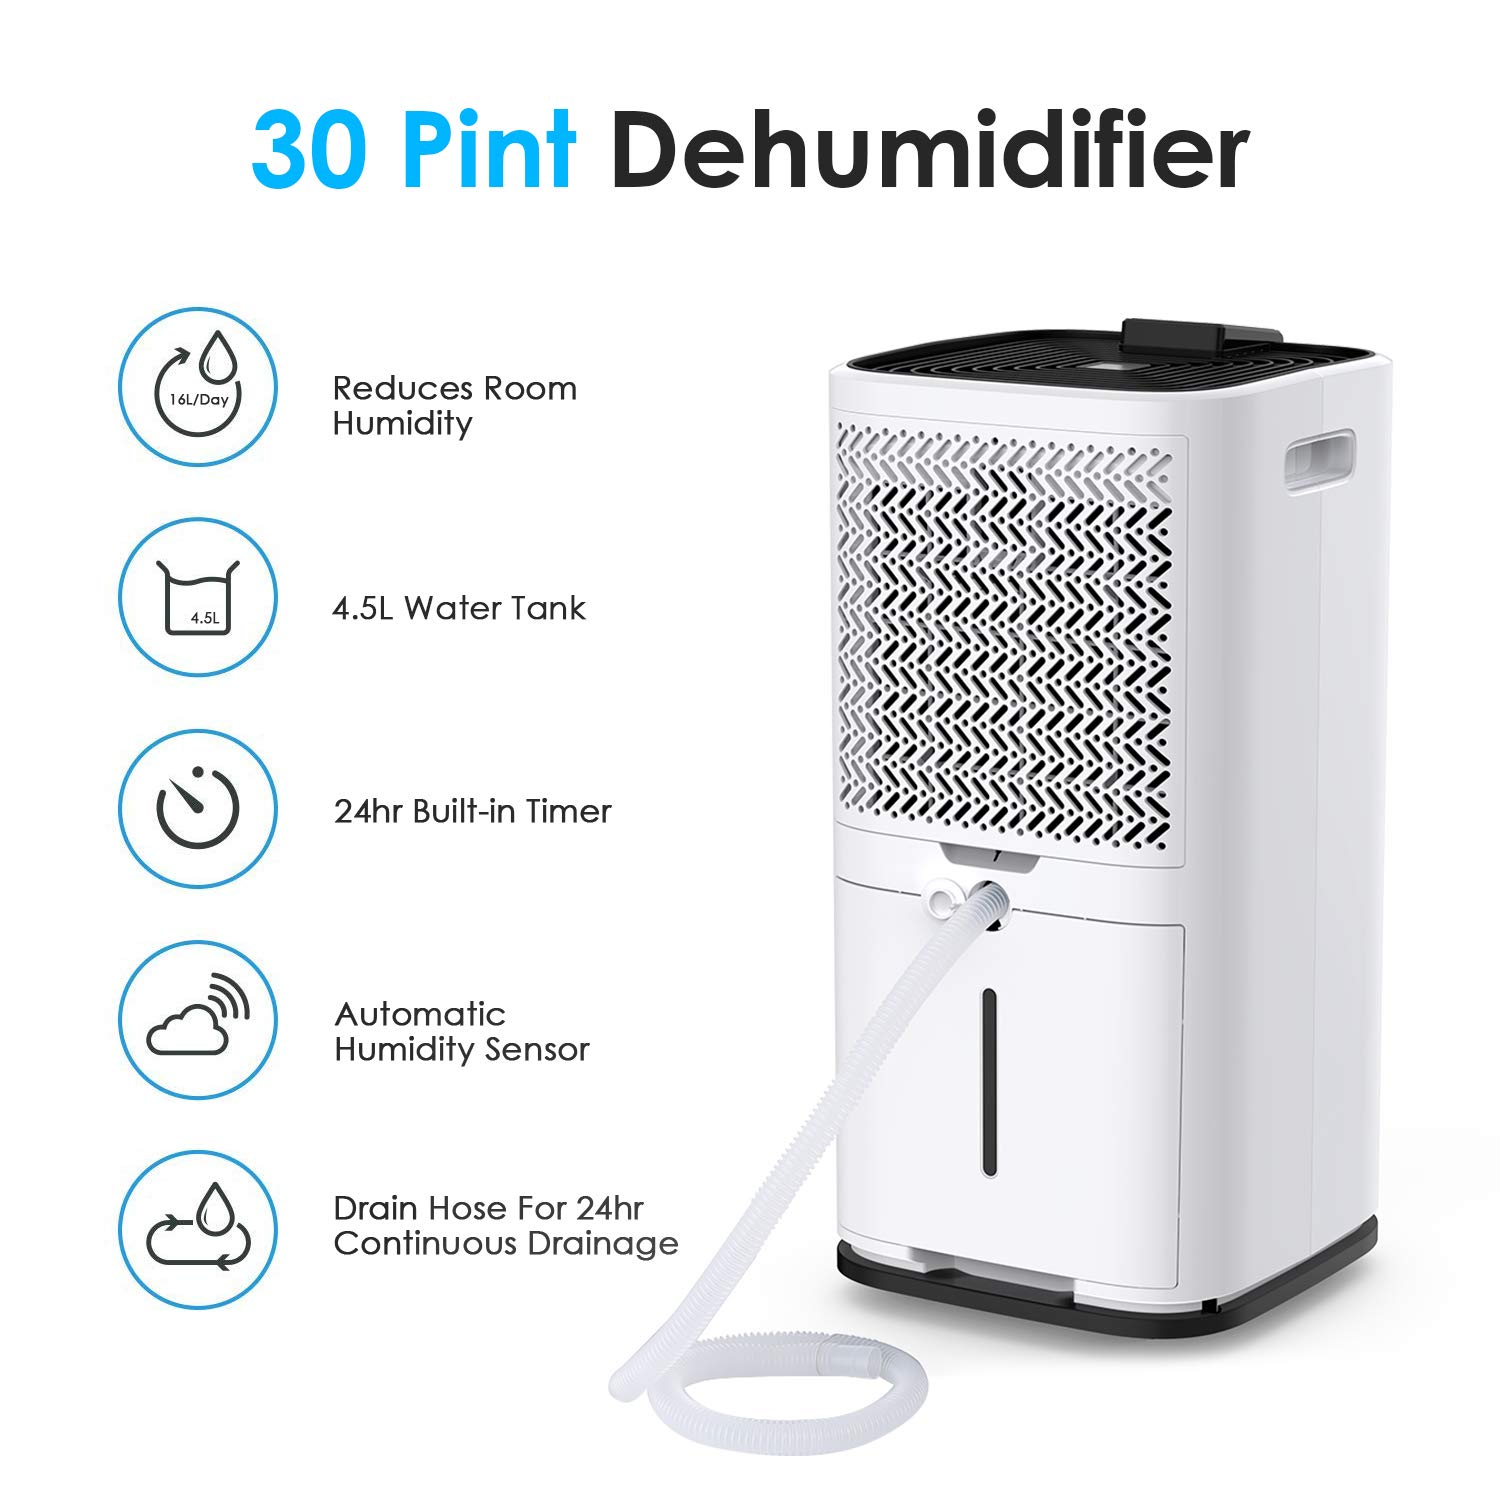 Colzer 30 Pints Portable Dehumidifier, Large Capacity, Compact Dehumidifier for Home, Bathroom, Kitchen, Bedroom, for Spaces Up to 1500 Sq Ft, Continuous Drain Hose Outlet (30 Pint) by Colzer (Image #4)